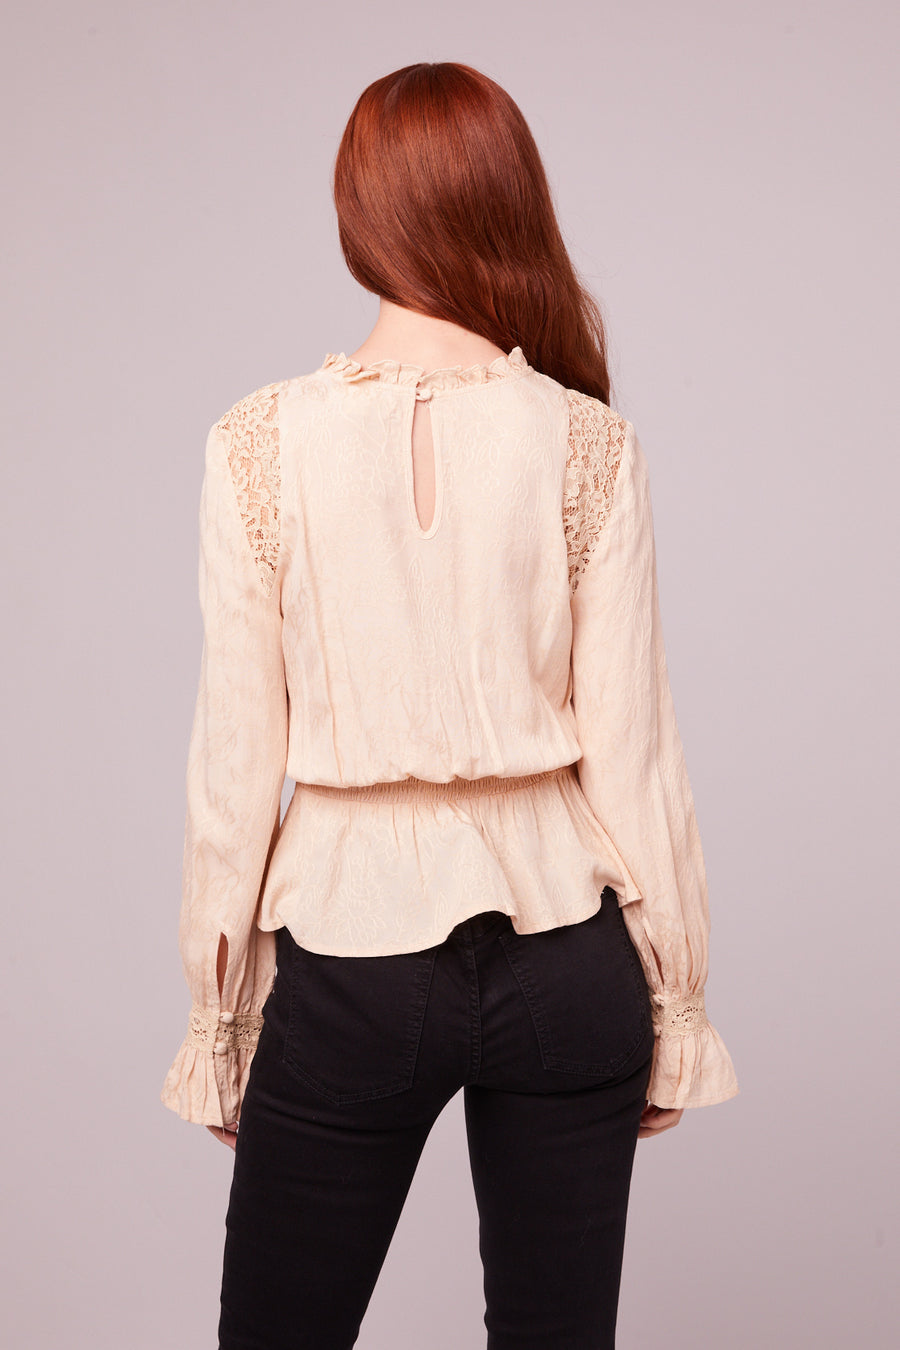 Shirley Victorian Ivory Lace Blouse Master